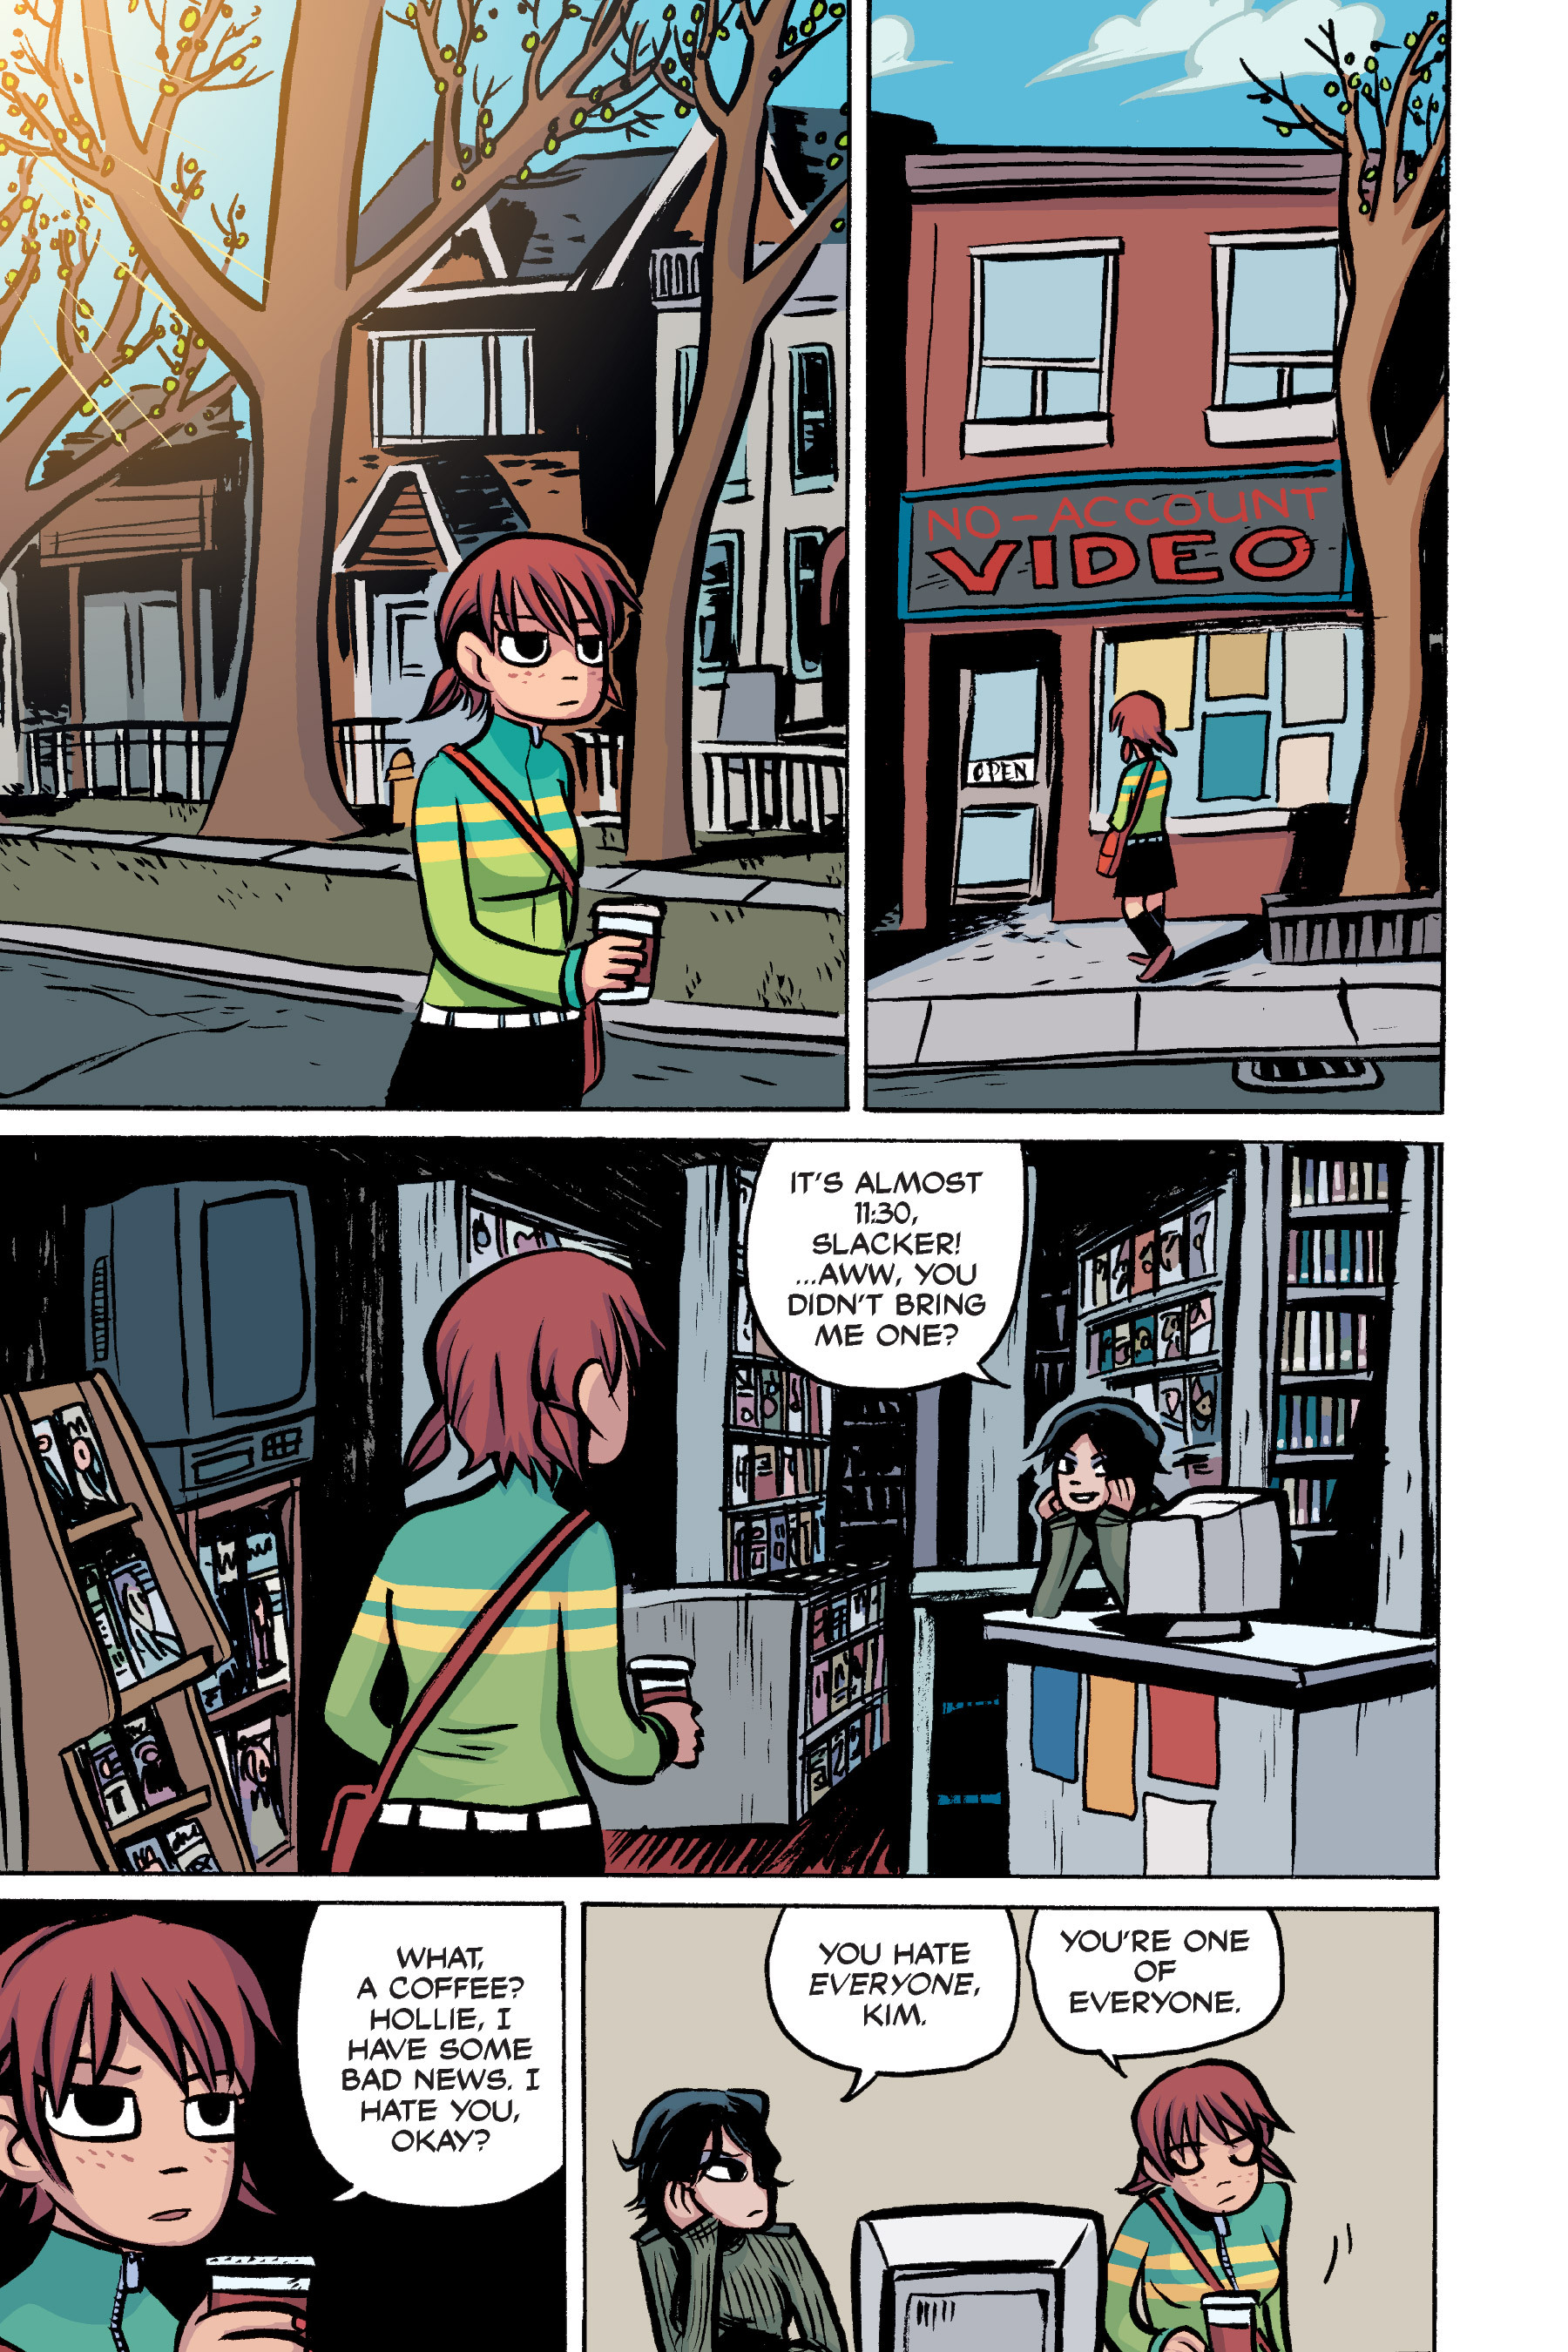 Scott pilgrim volume 3